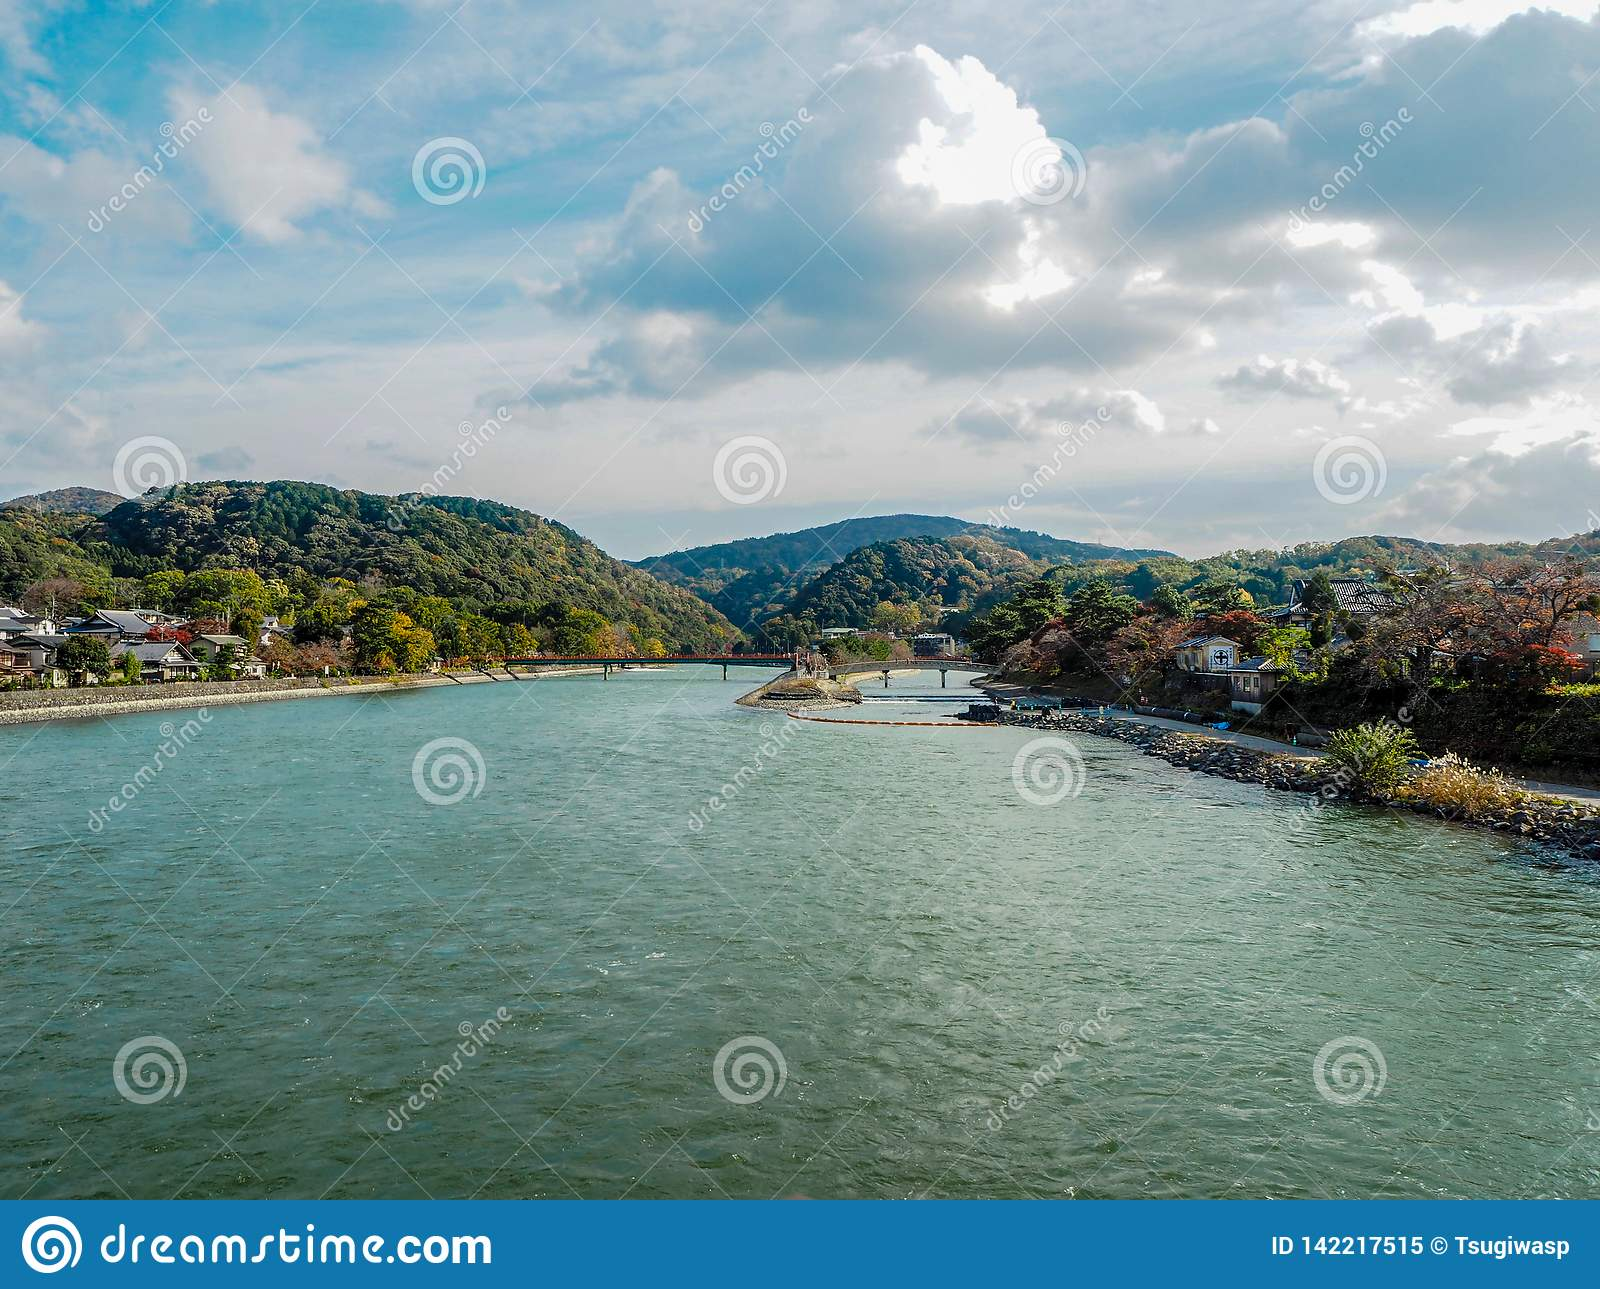 The river in the middle of a small town with mountains and cloudy sky background